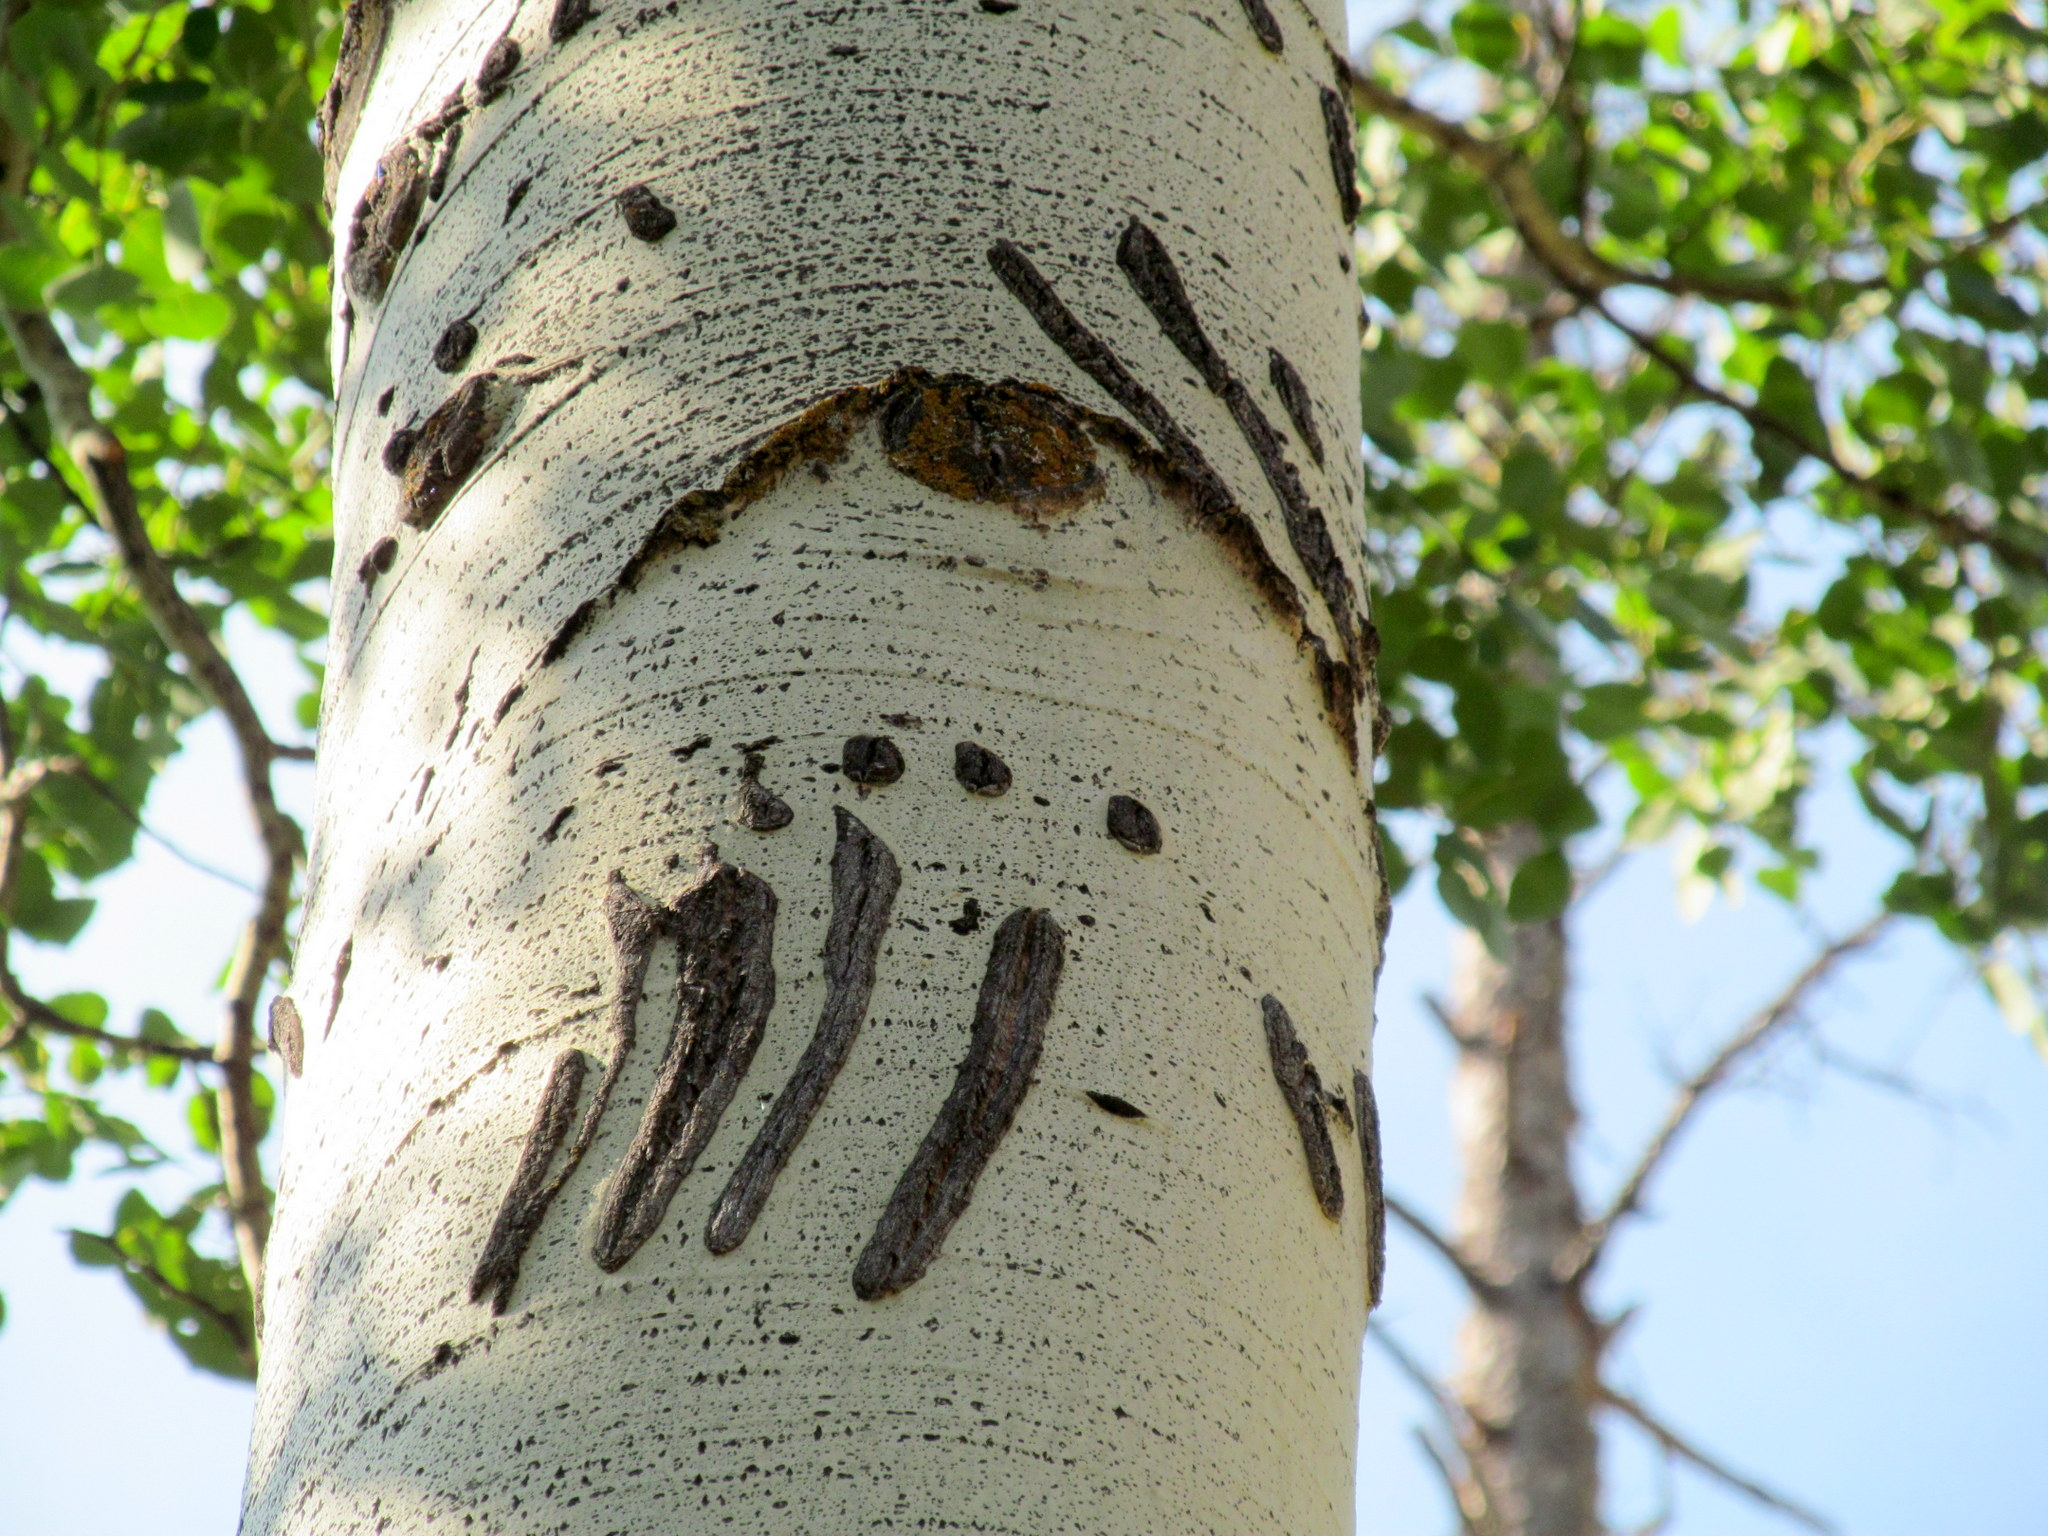 Photo: Bear claw marks in an aspen tree